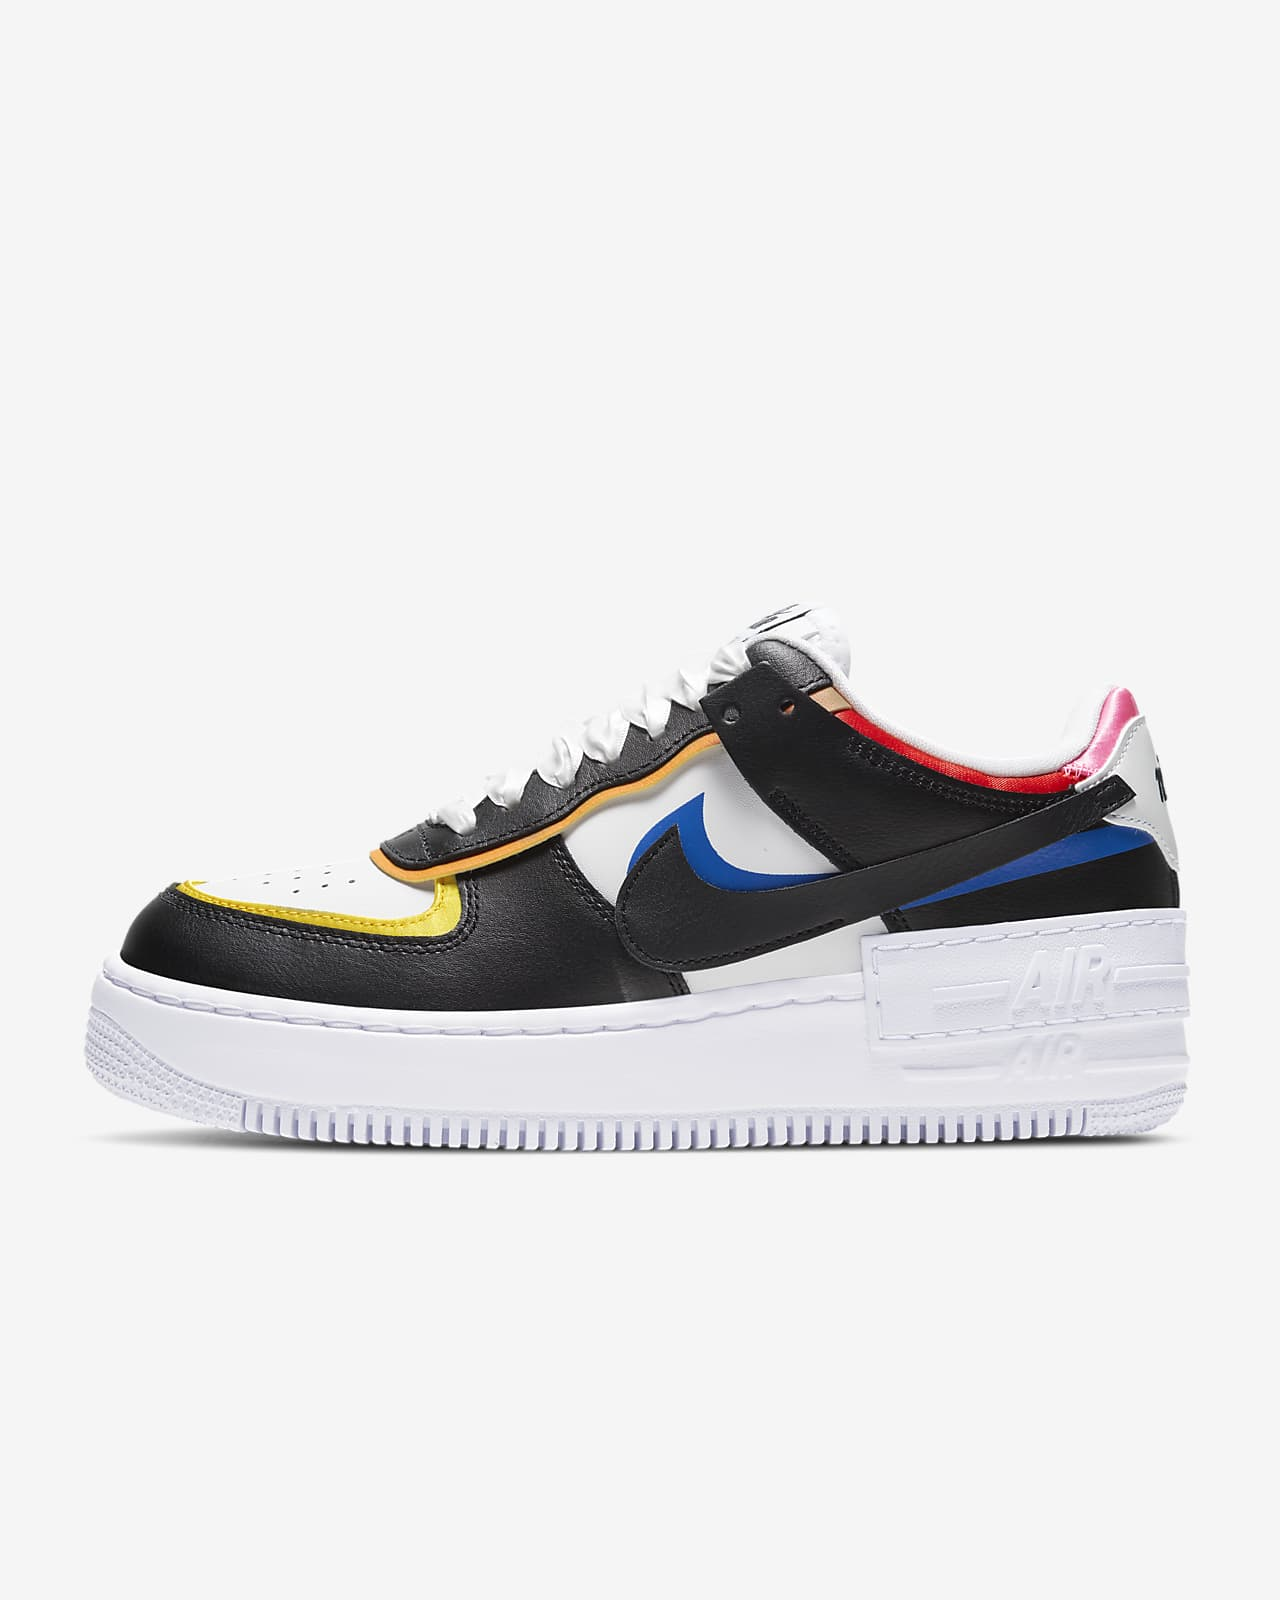 Nike Air Force 1 Shadow Women S Shoe Nike Lu Nike air force 1 (39). nike air force 1 shadow women s shoe